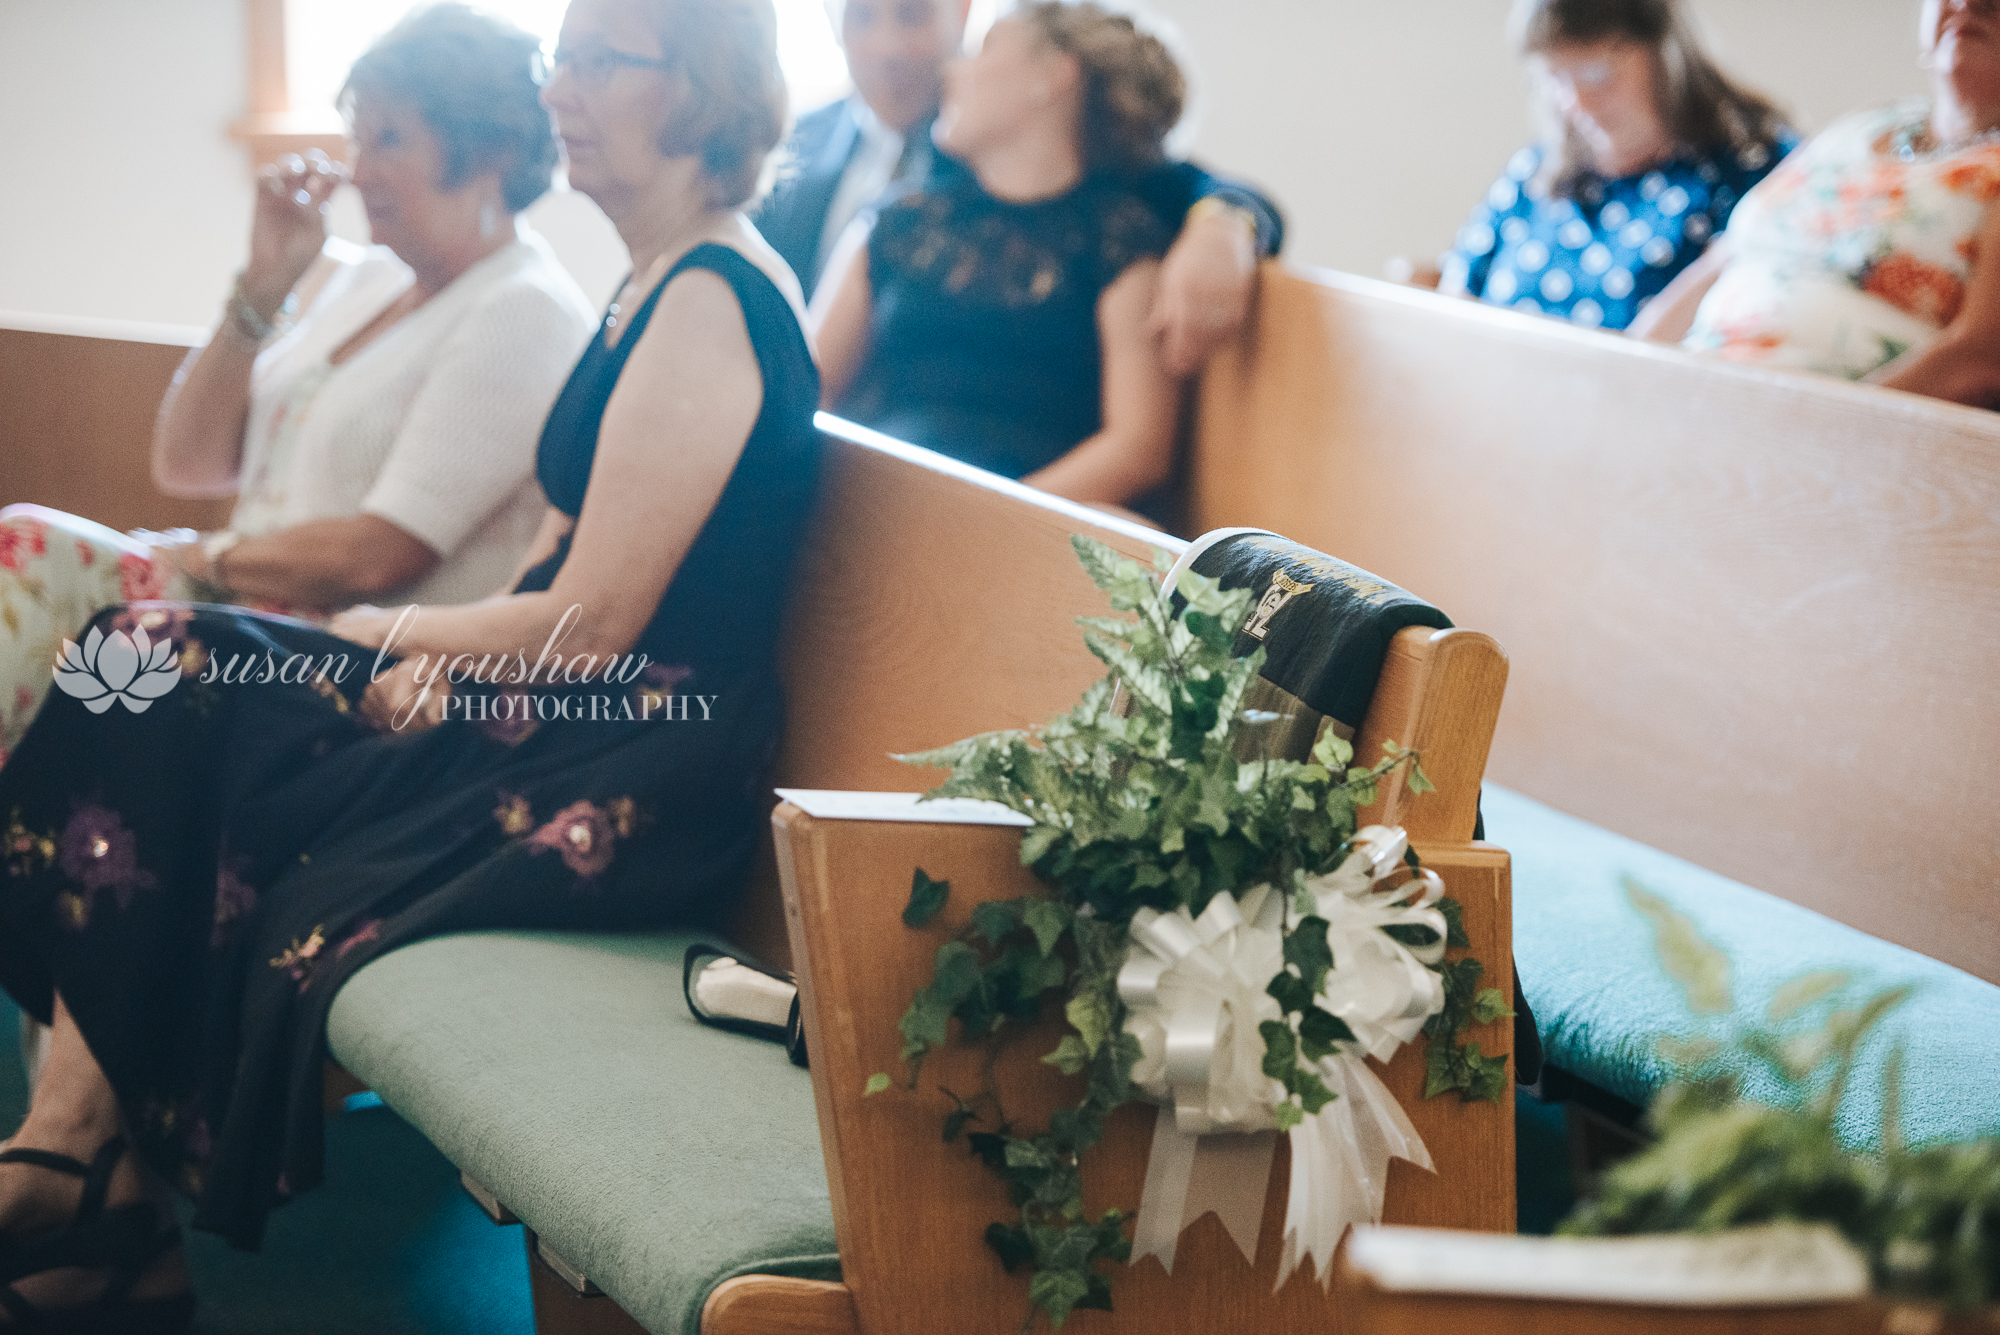 Katelyn and Wes Wedding Photos 07-13-2019 SLY Photography-43.jpg